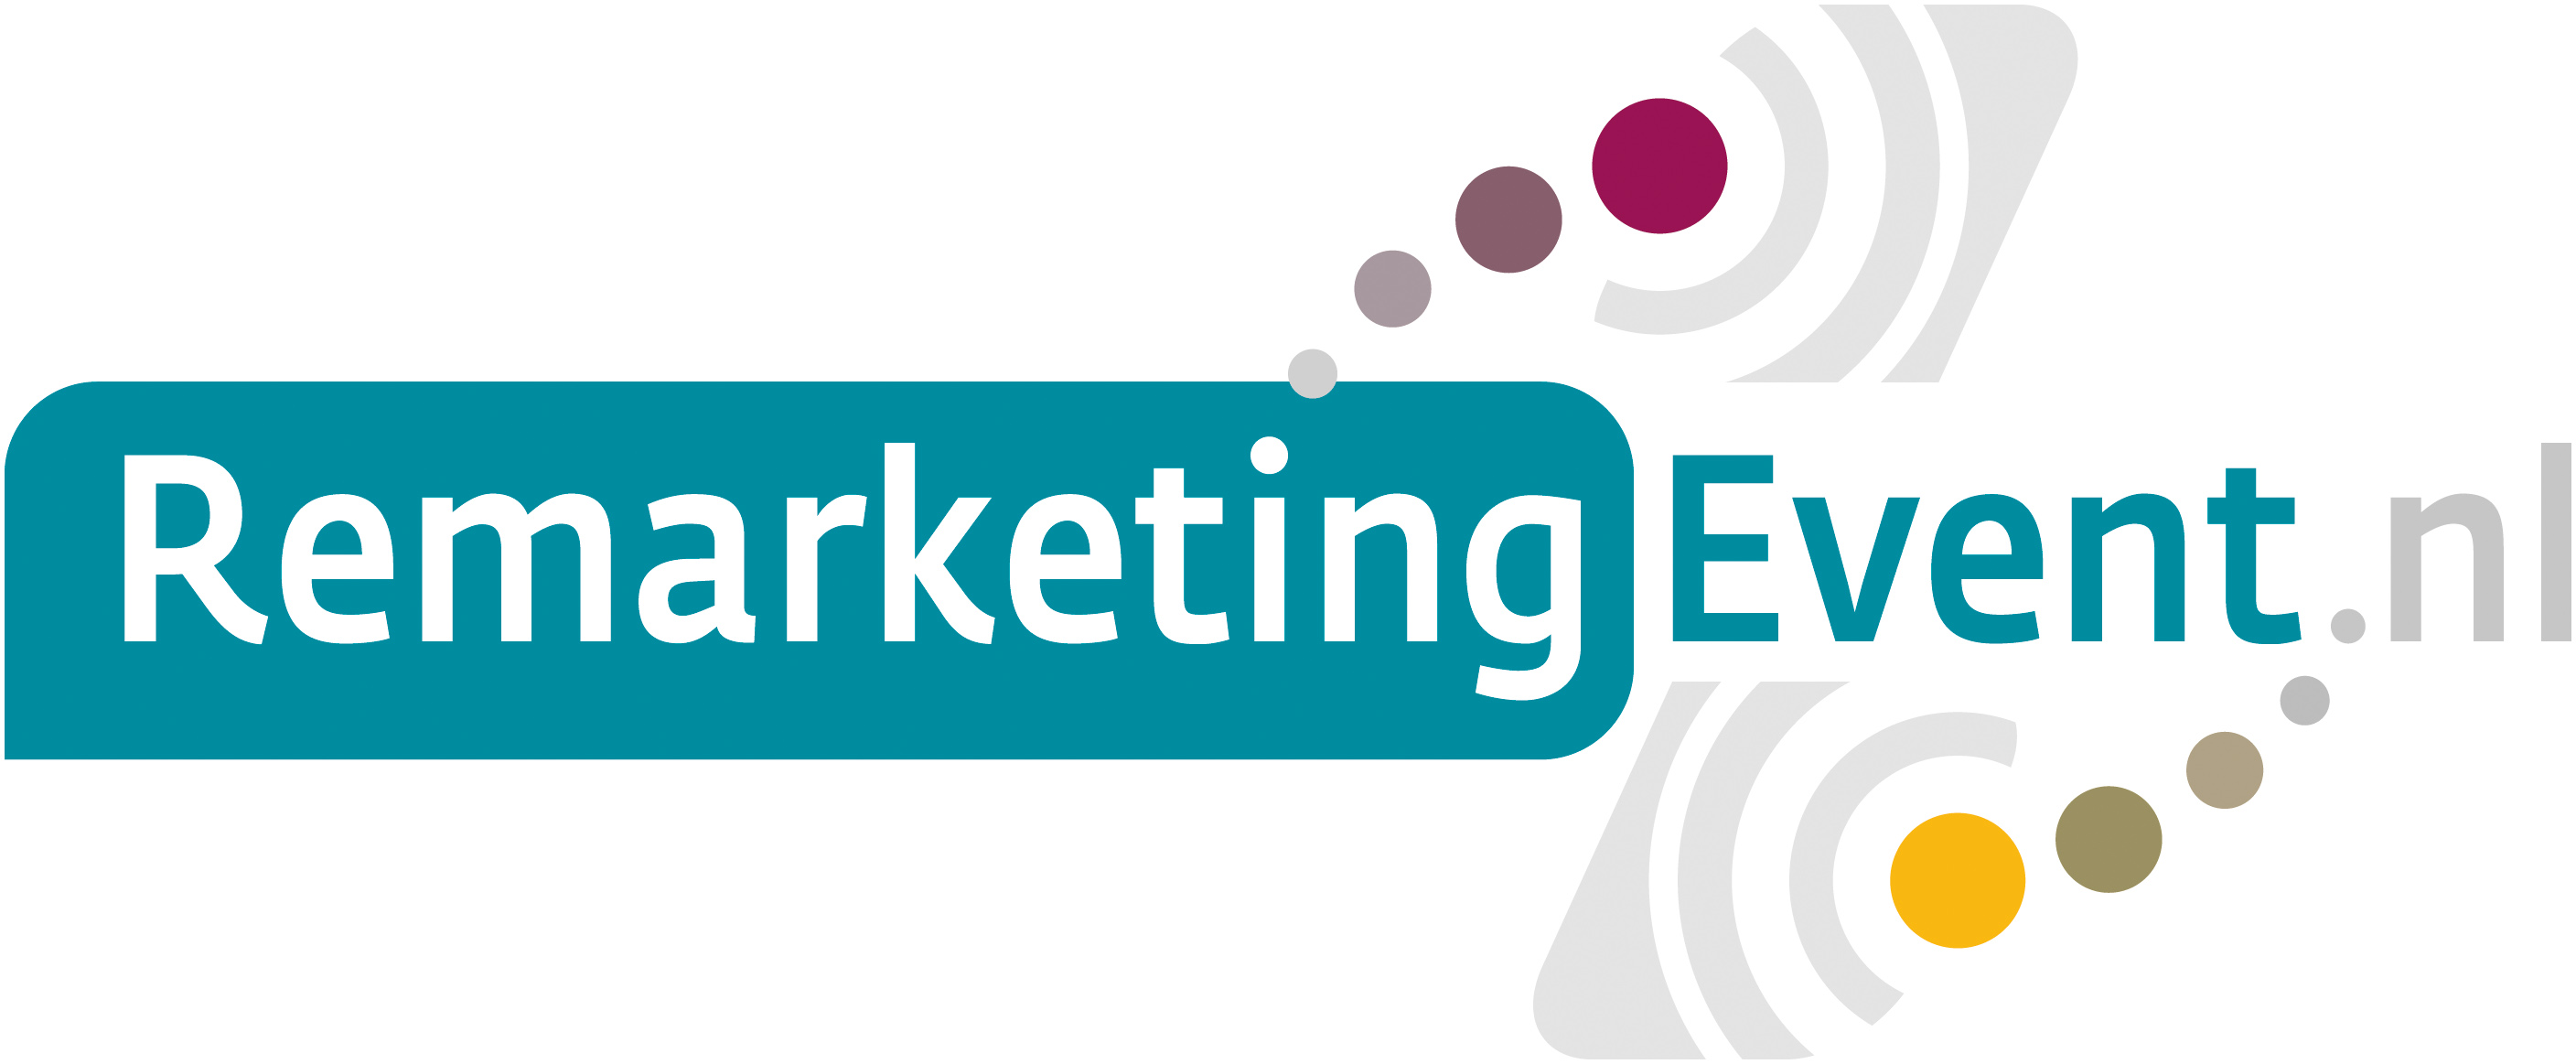 Remarketing Event: 25 maart Almere